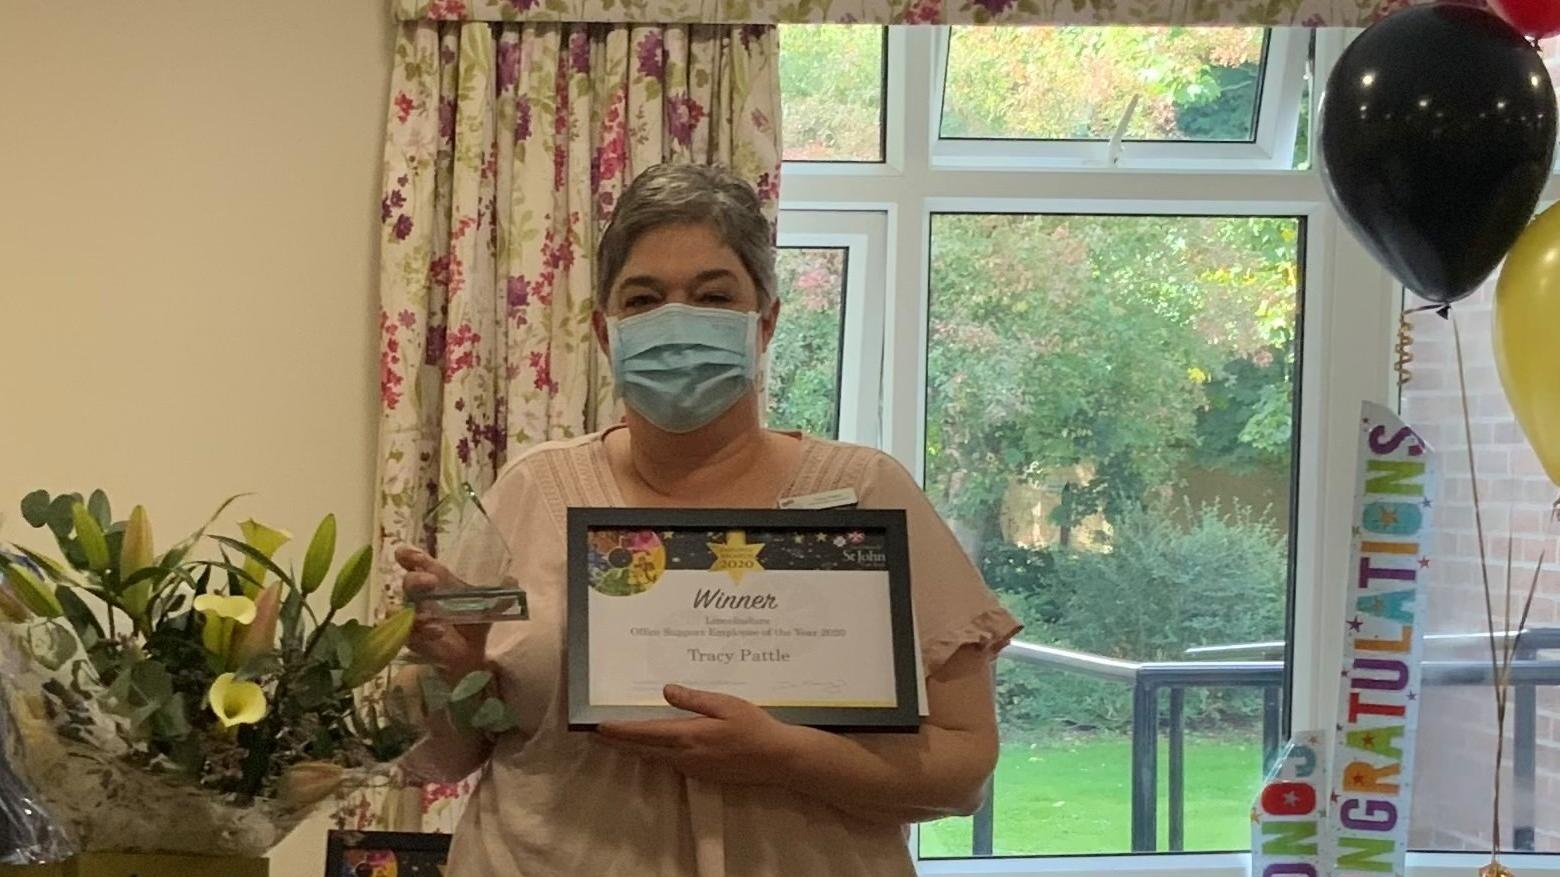 Tracy with Award and Flowers